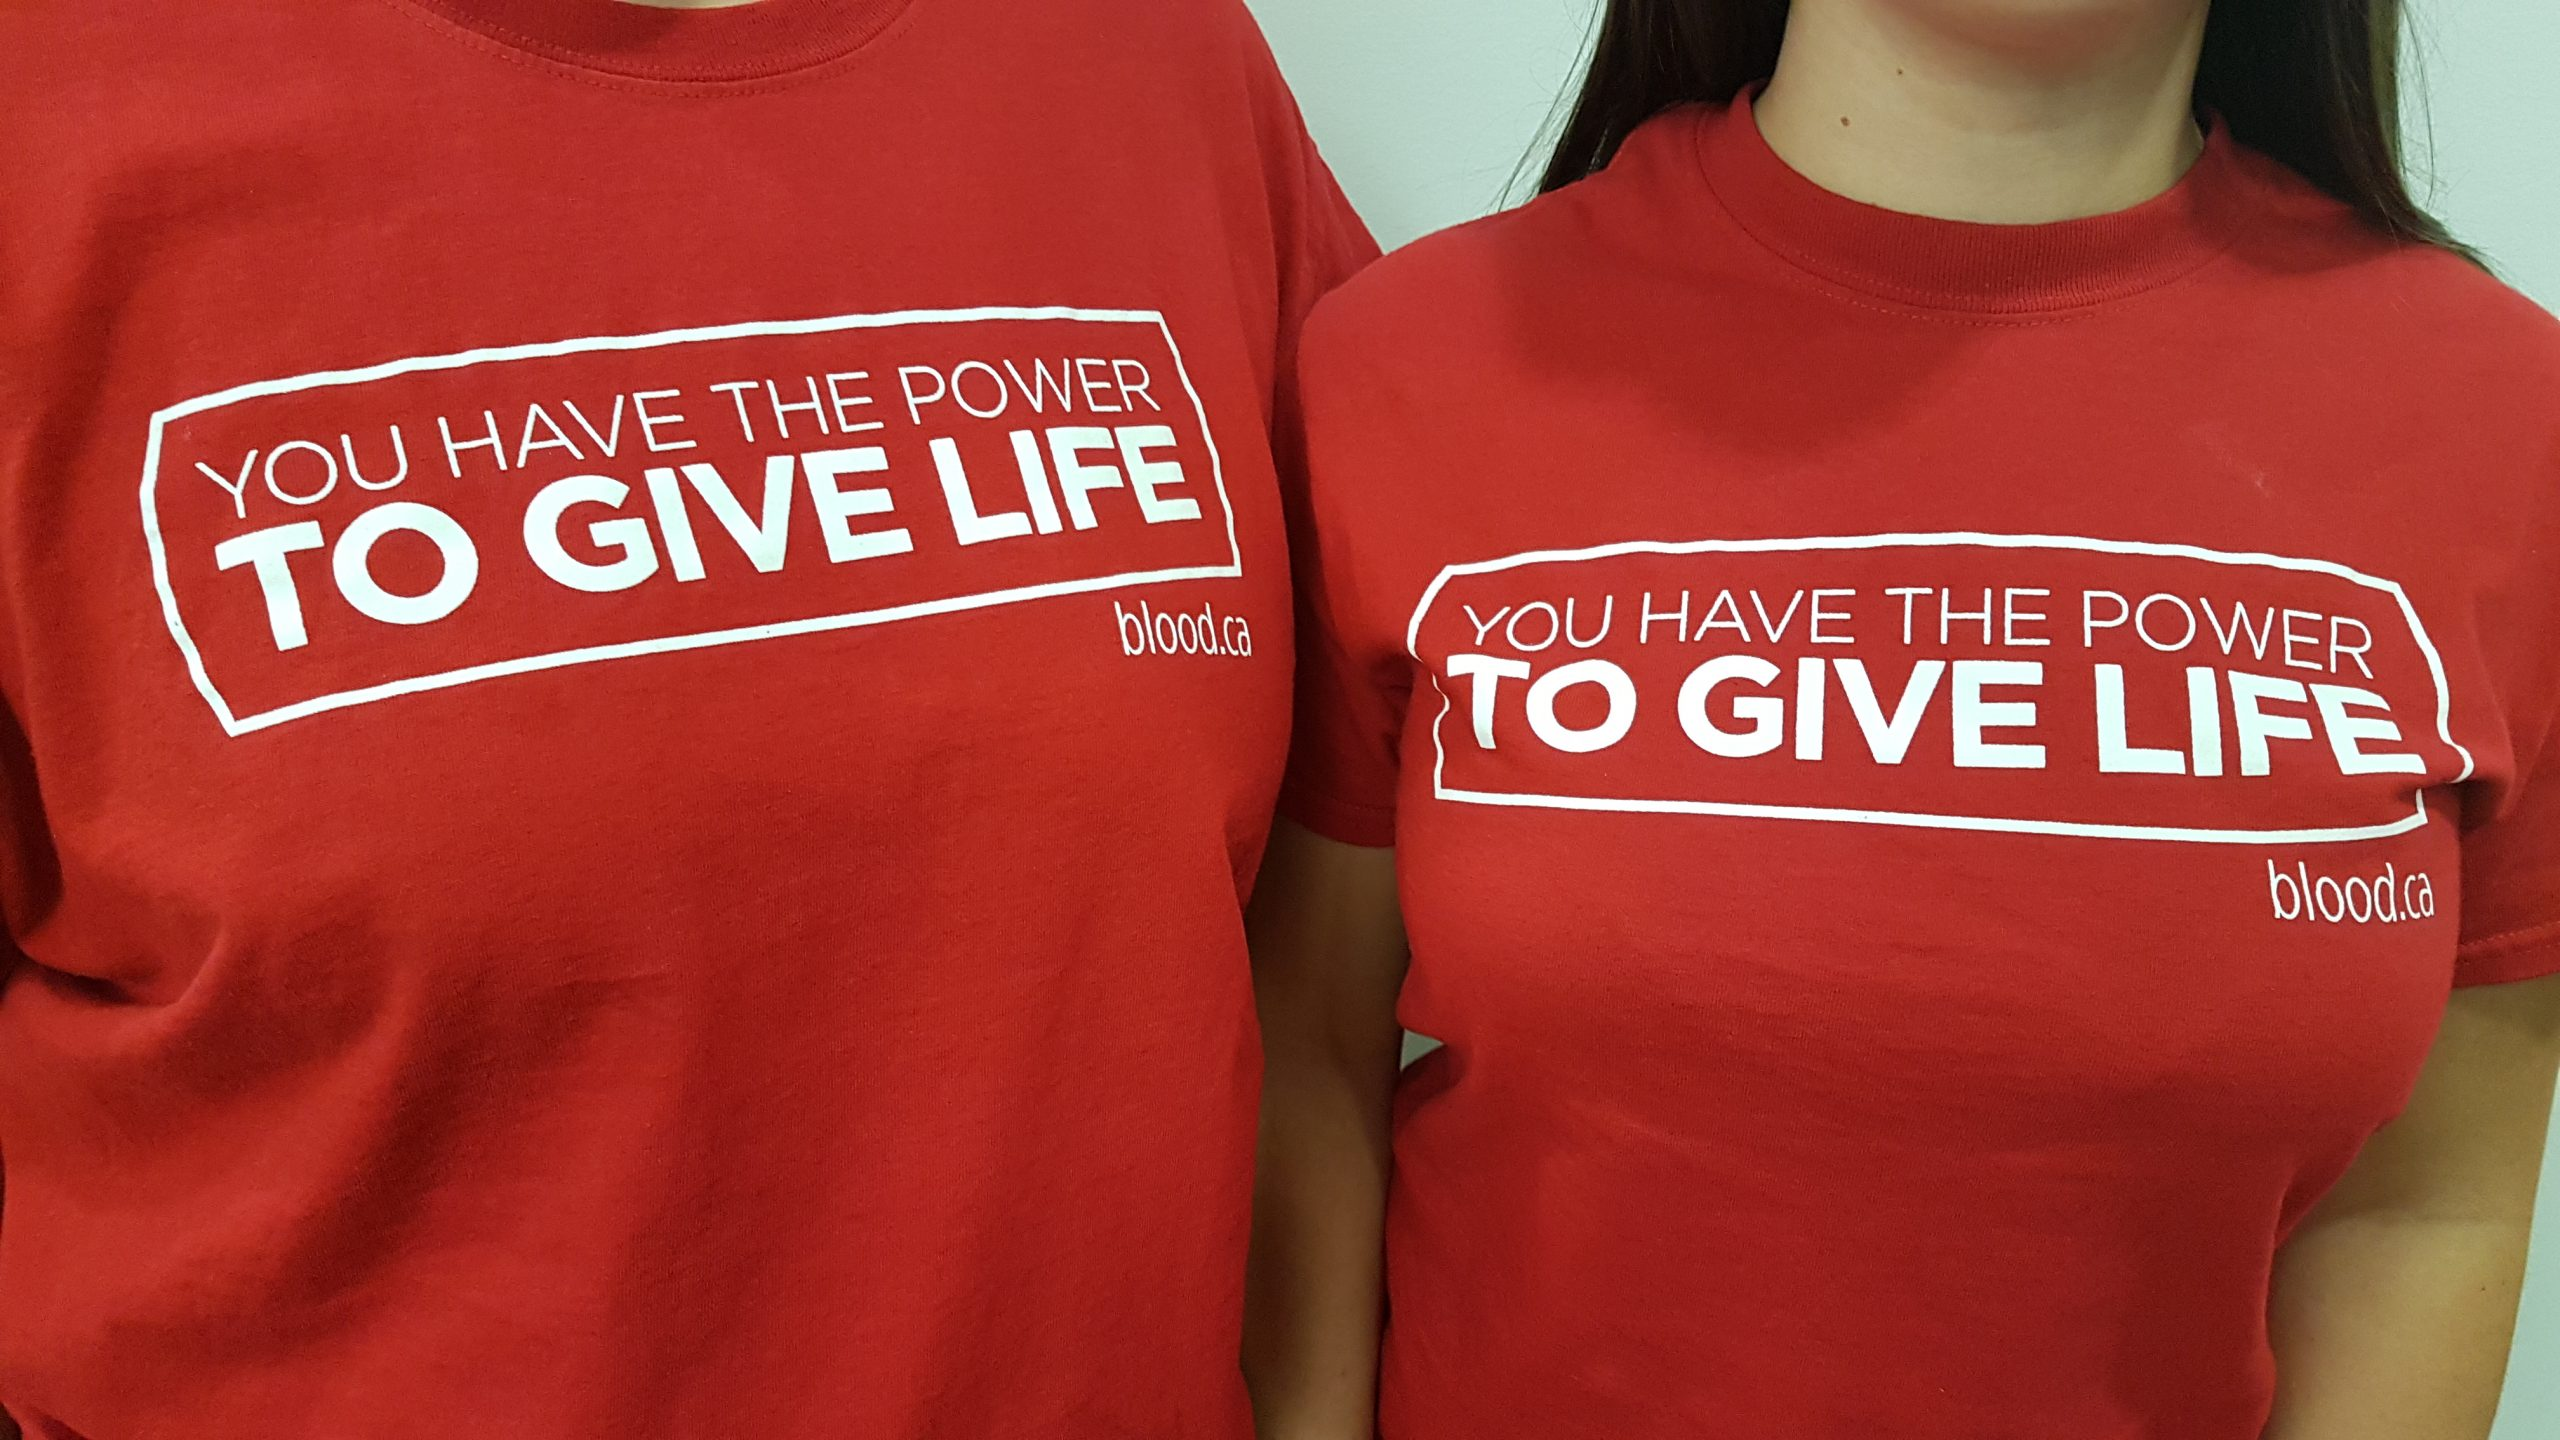 January honoring National Blood Donor Month